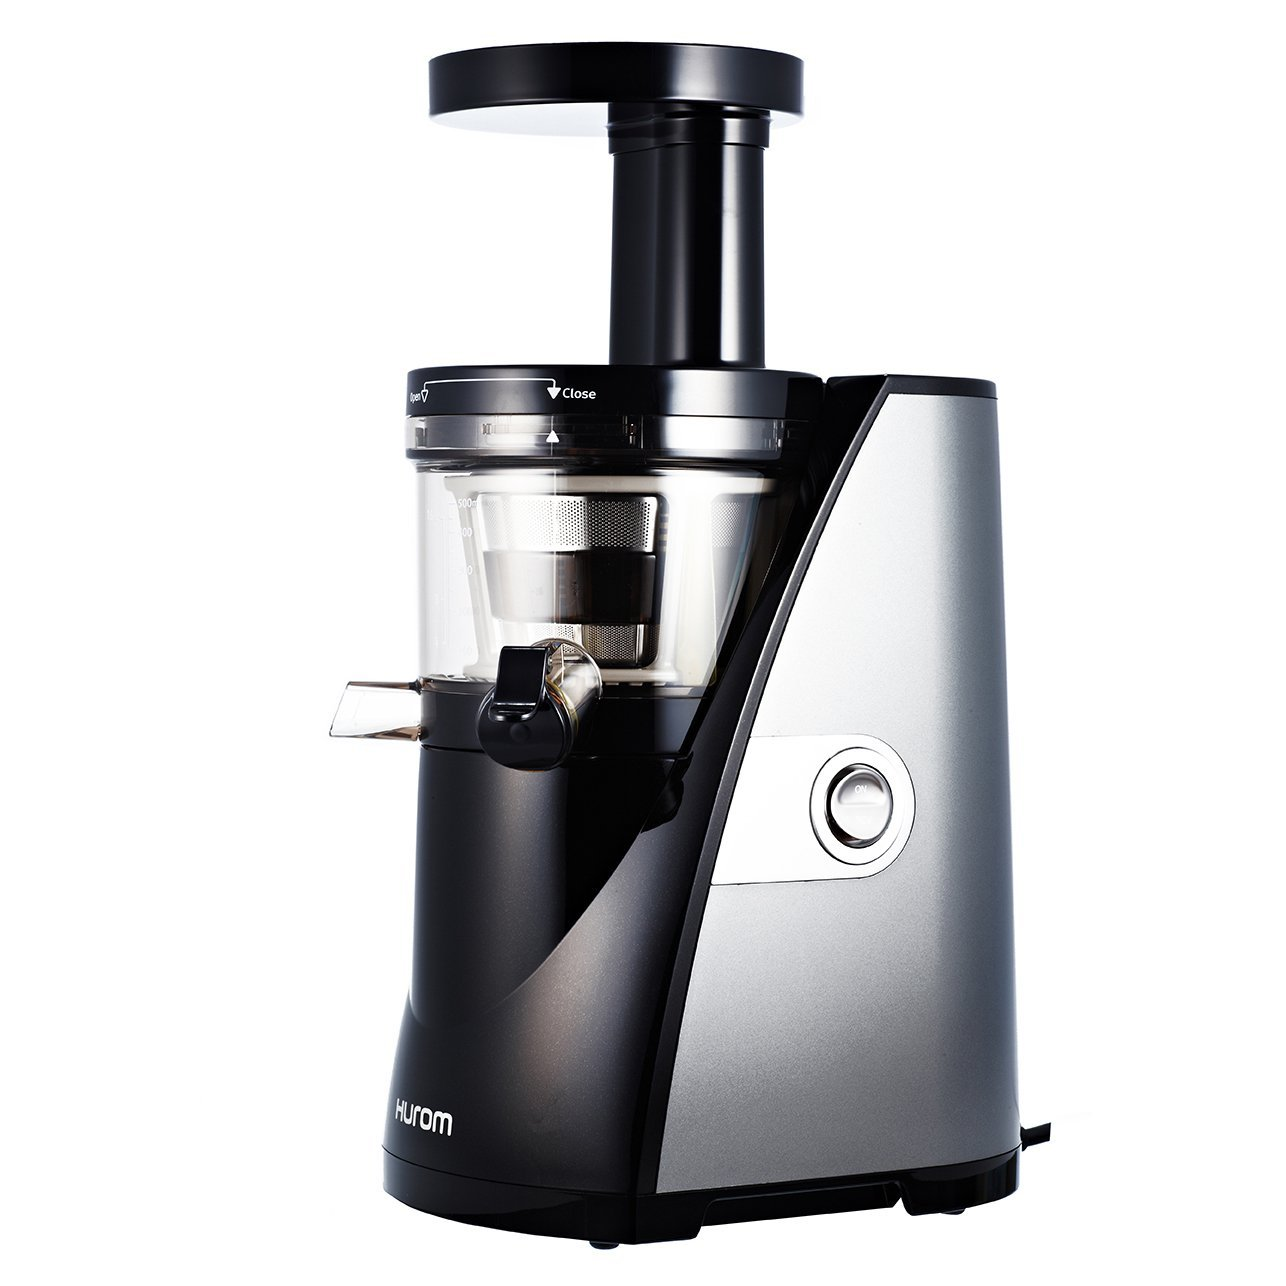 Hurom Juicer Omega Vsj843qs : 5 Best Hurom Juicer Reviews UPDATED: 2018 The Home Savant